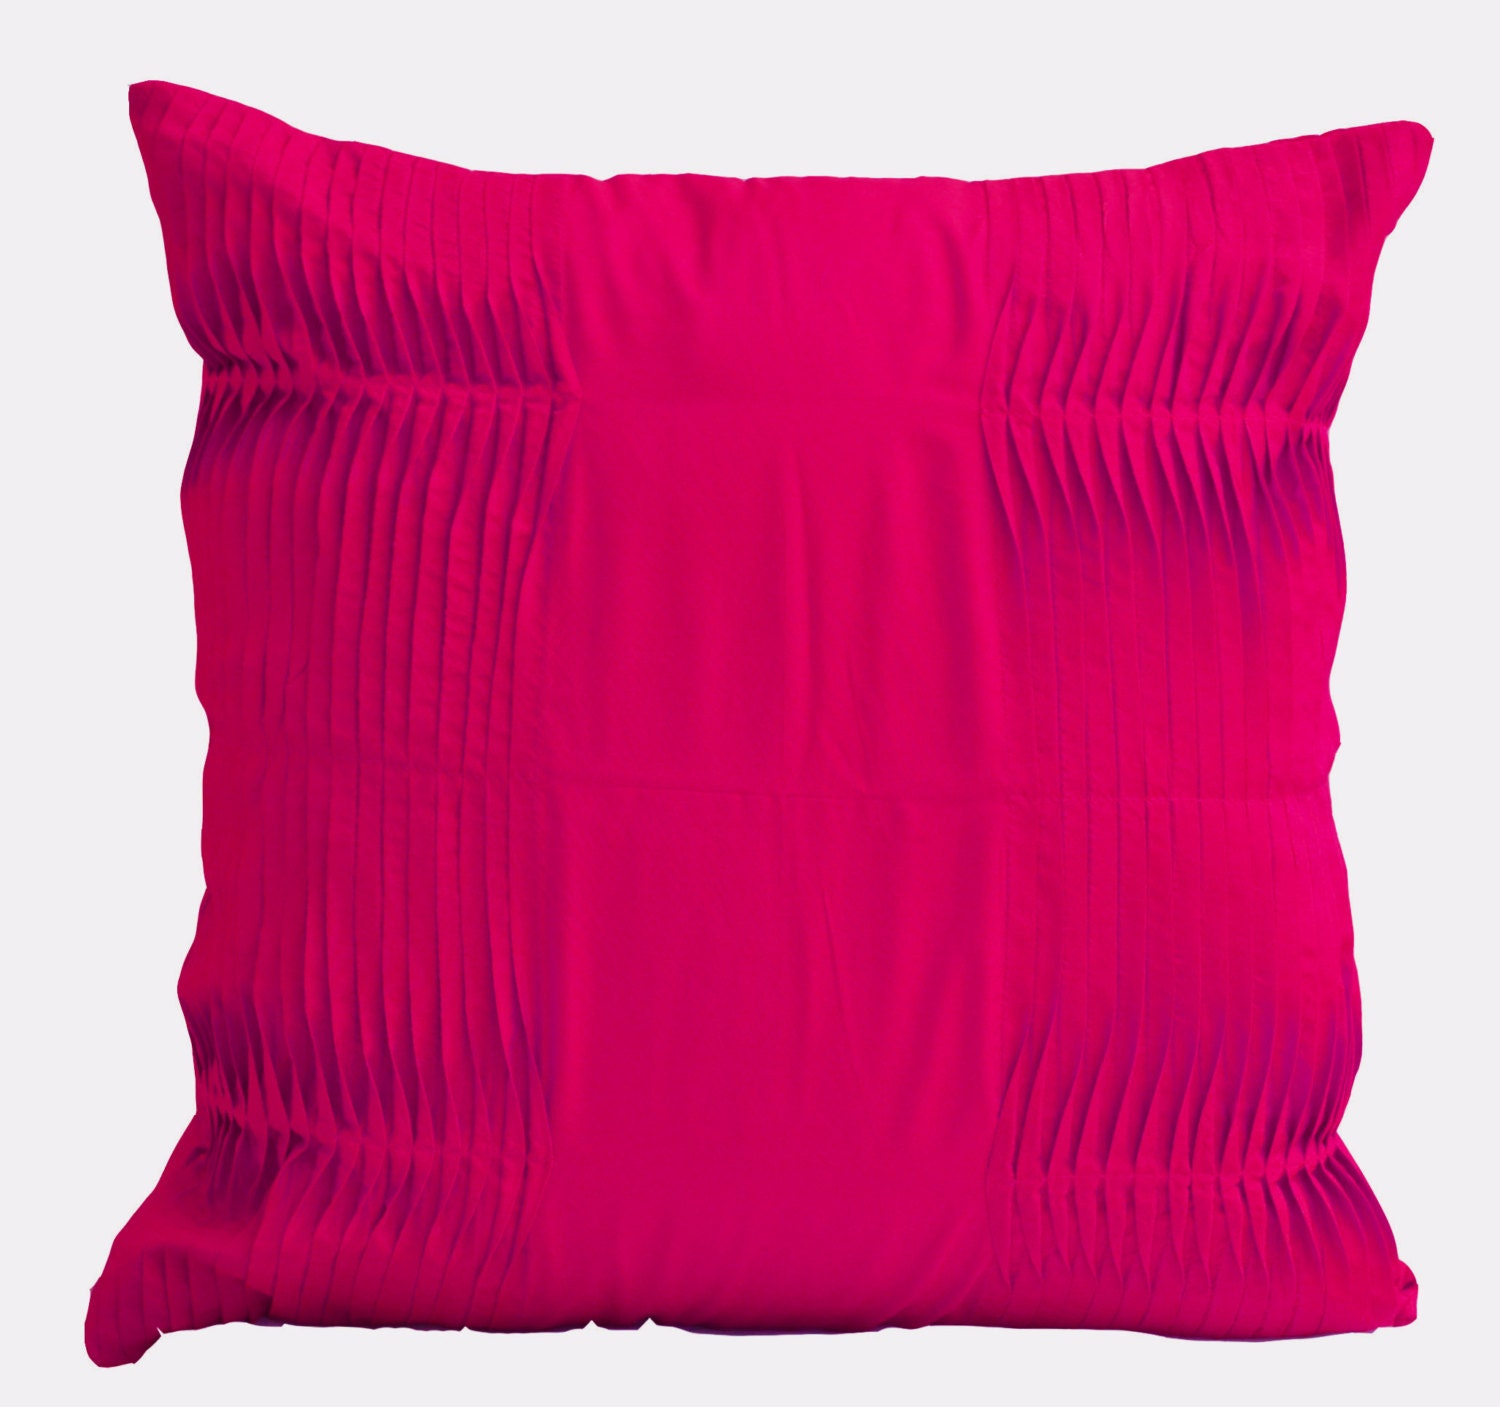 Decorative cushion Fuchsia pillow cover Cotton Throw pillow